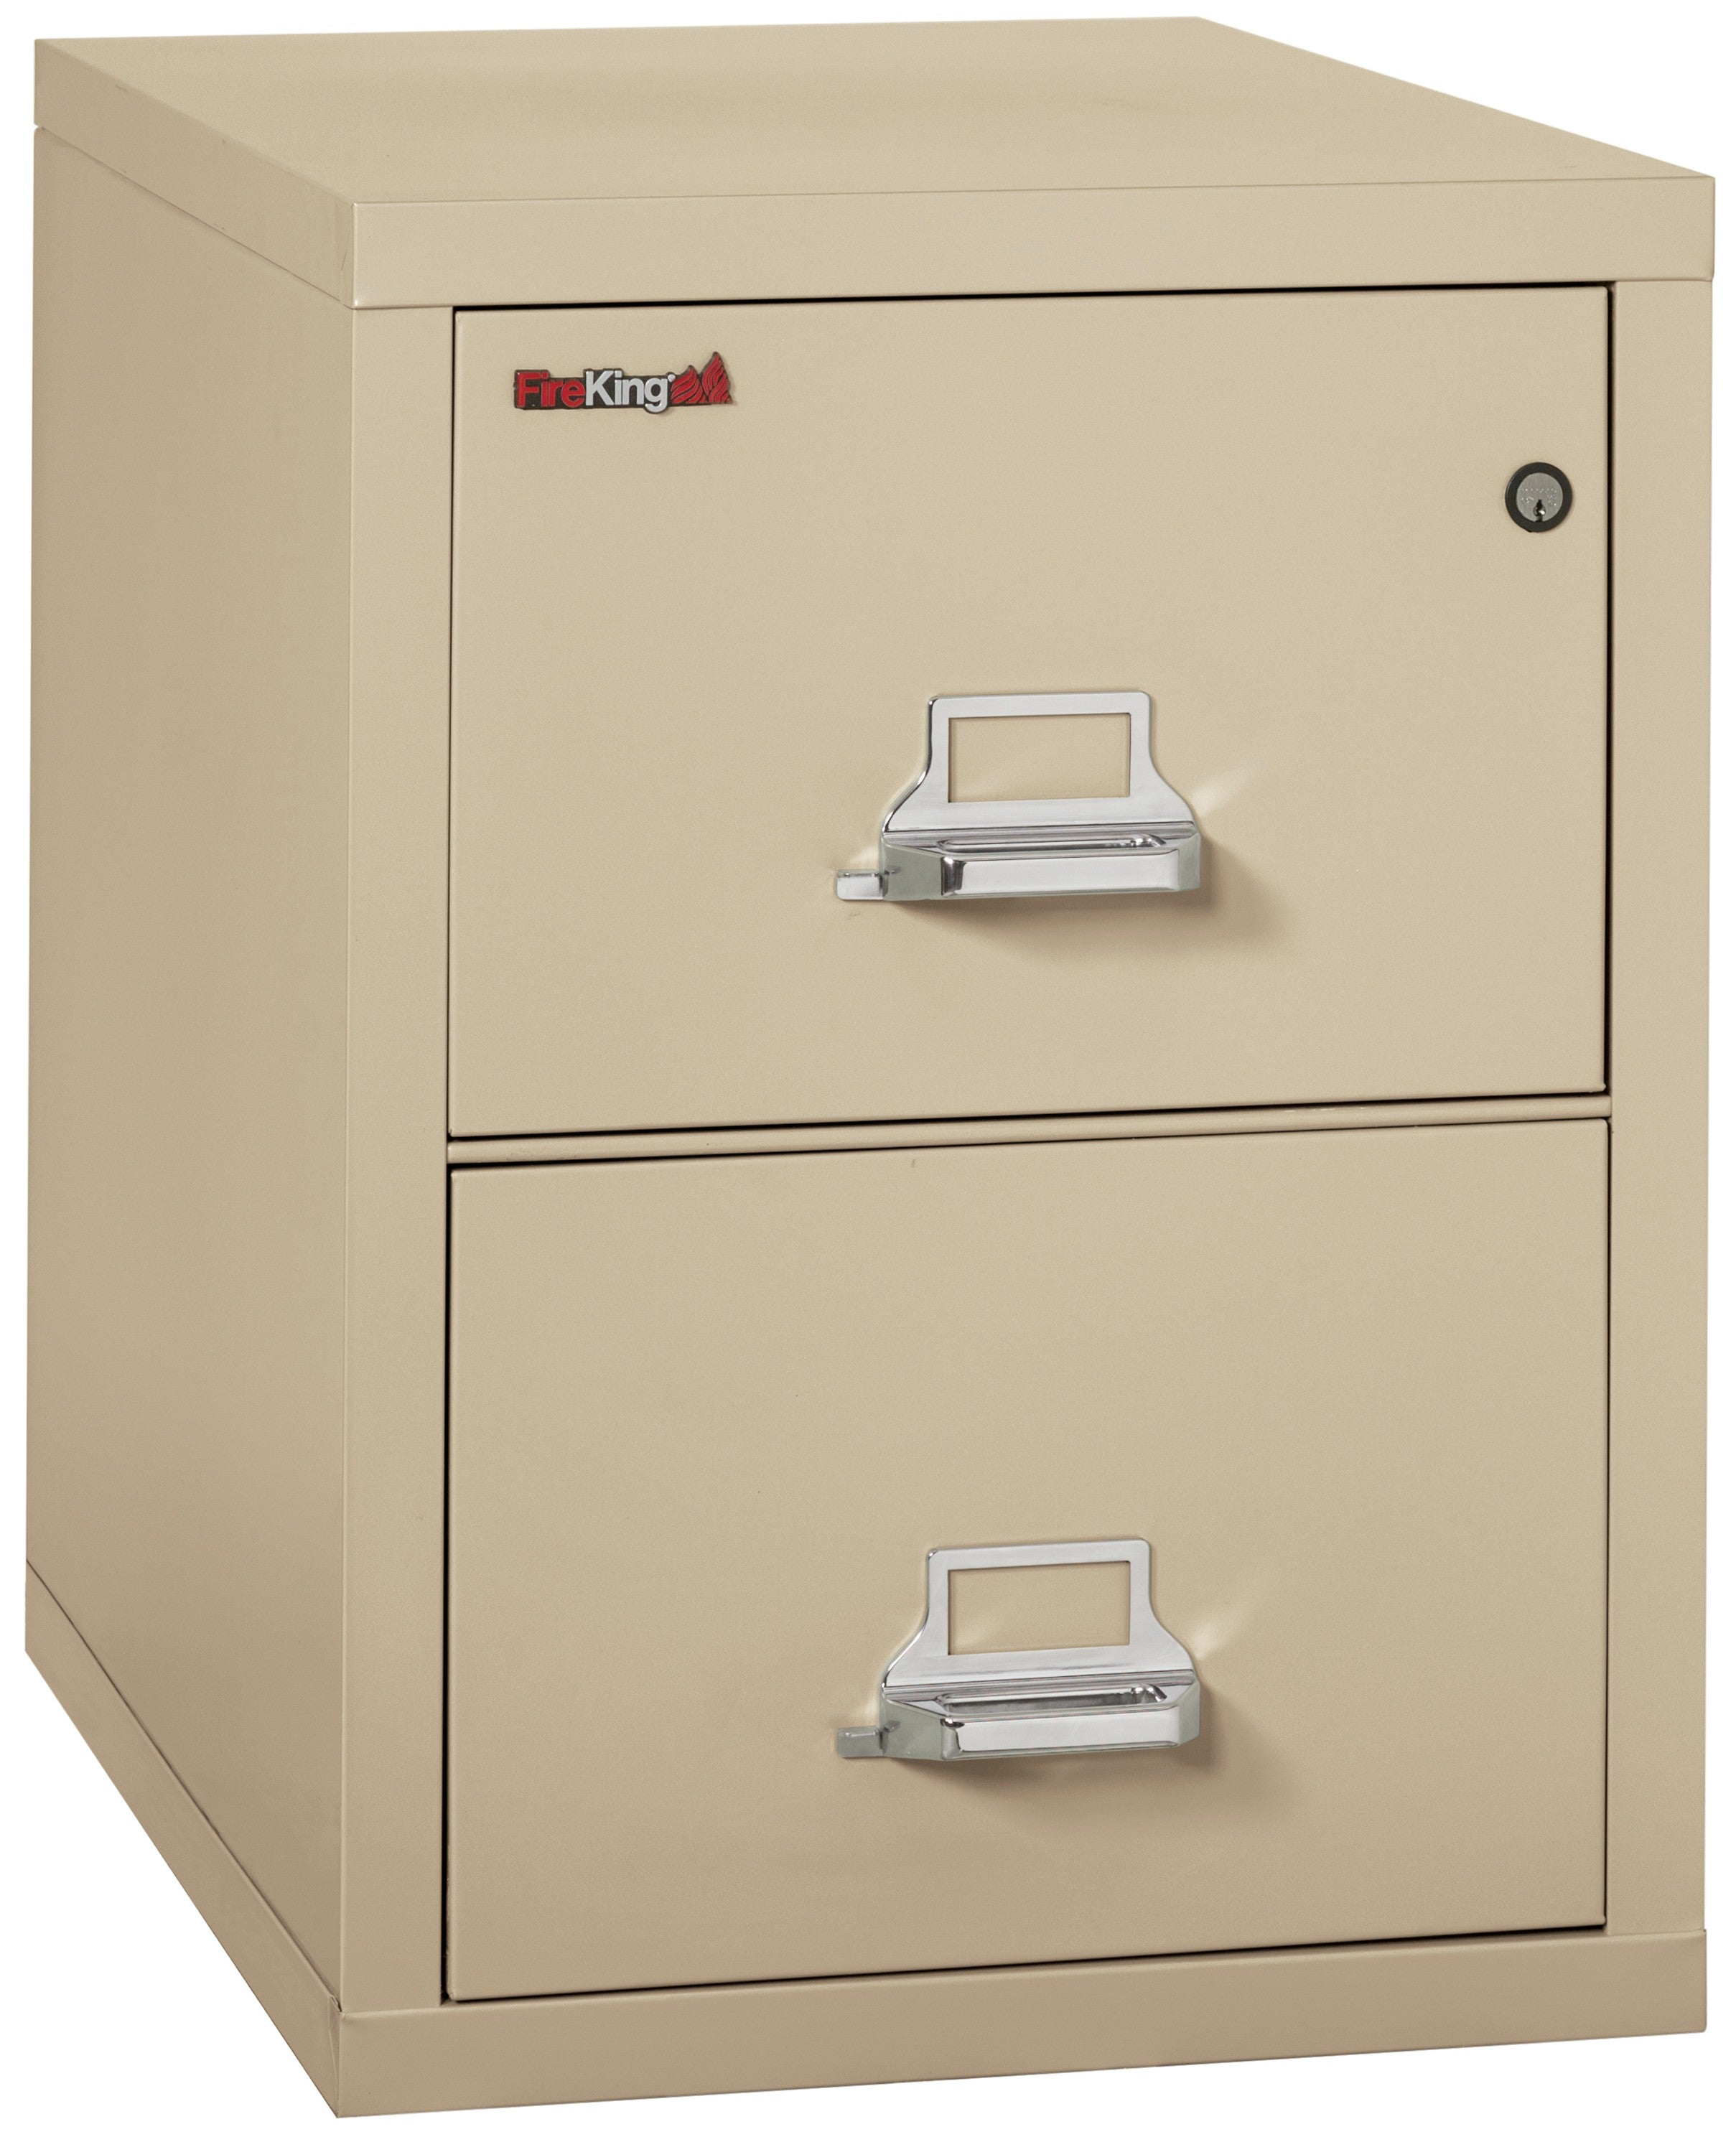 "Fireking 2 Drawer Letter 31"" D Classic Vertical File Cabinet"